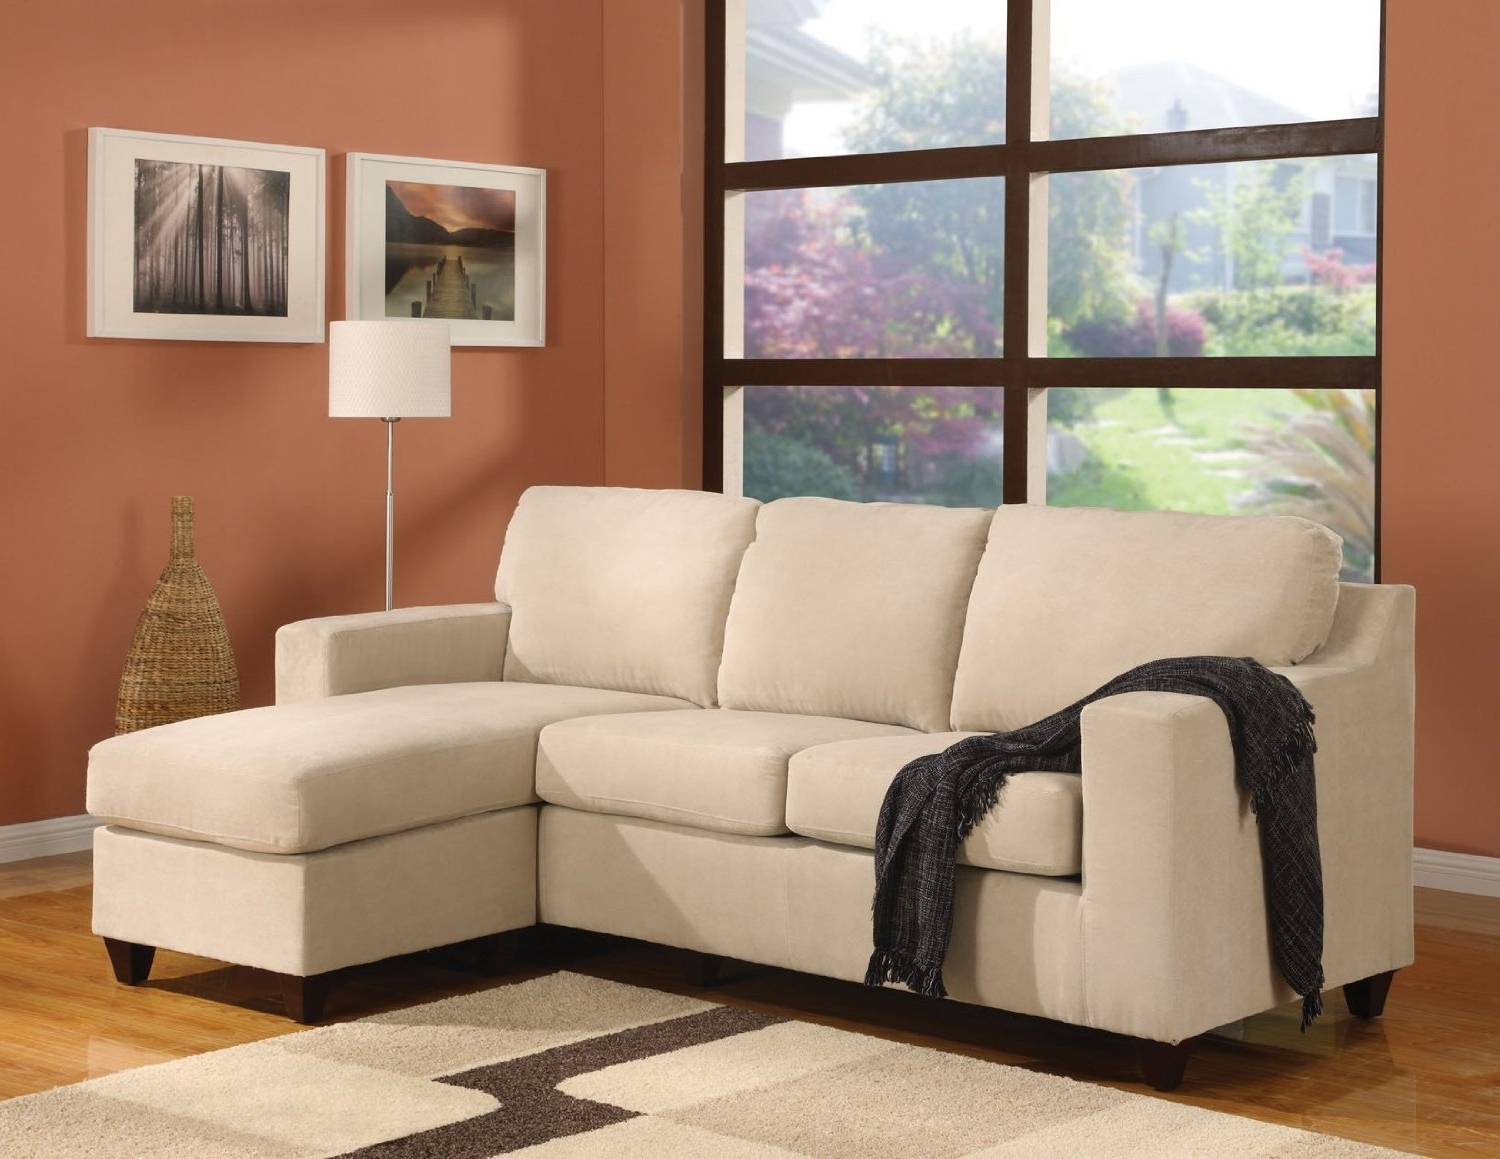 Small Sectional Sofas With Chaise And Ottoman With Widely Used Awesome Small Sectional Sofa With Chaise Lounge Chairs (View 15 of 15)